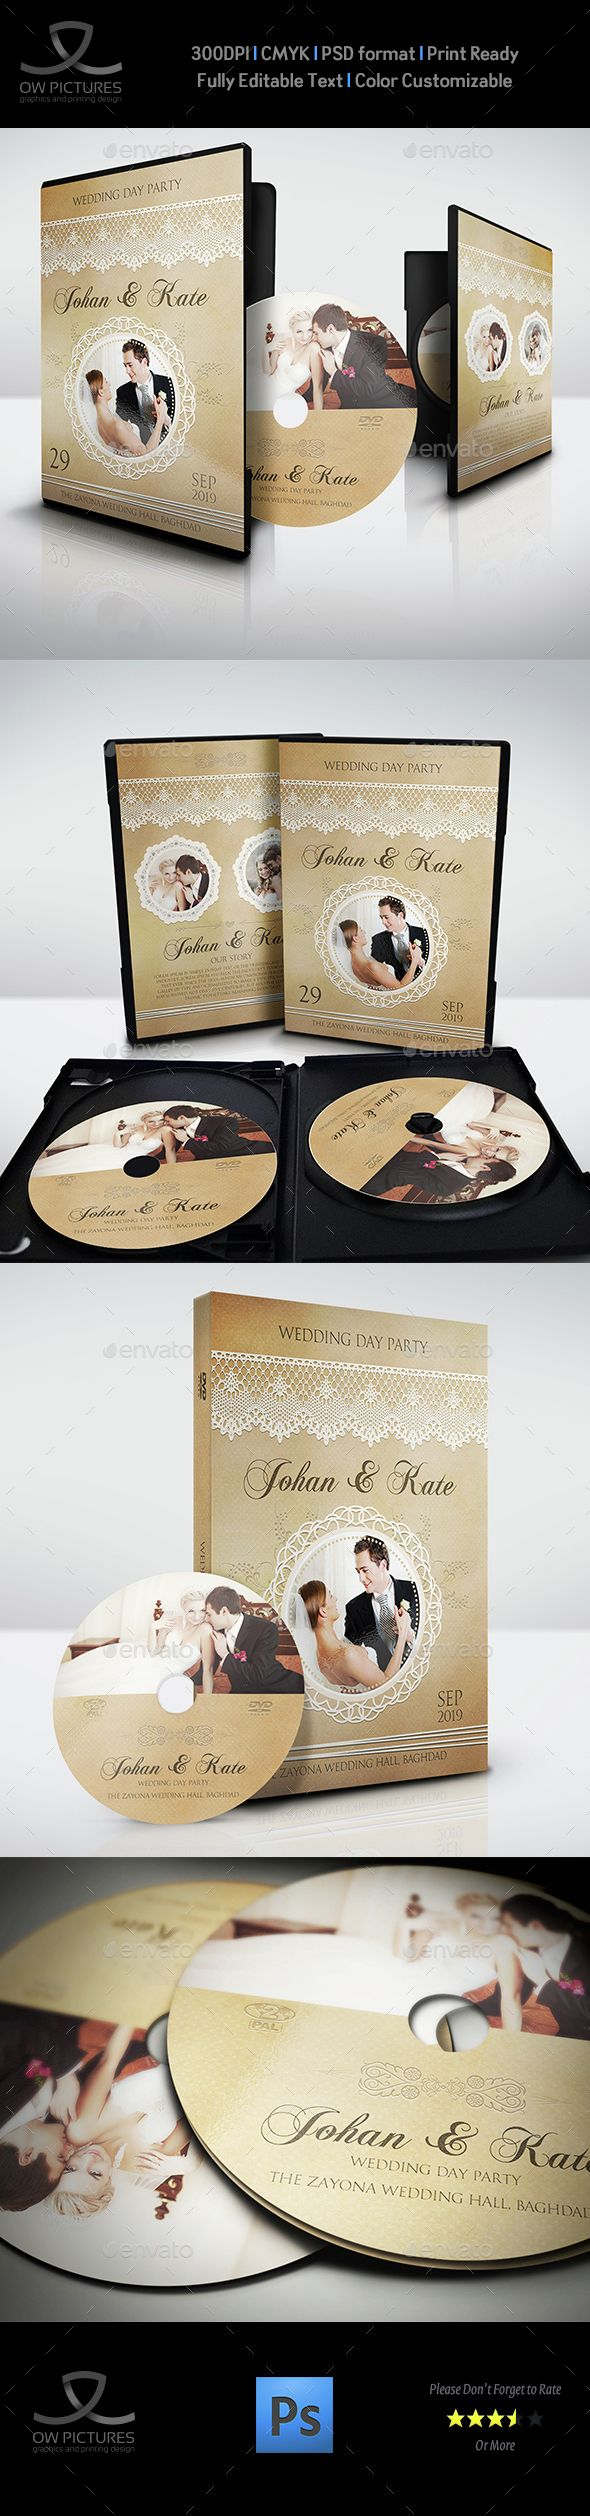 13 best DVD Box set images on Pinterest | Template, Cover design and ...